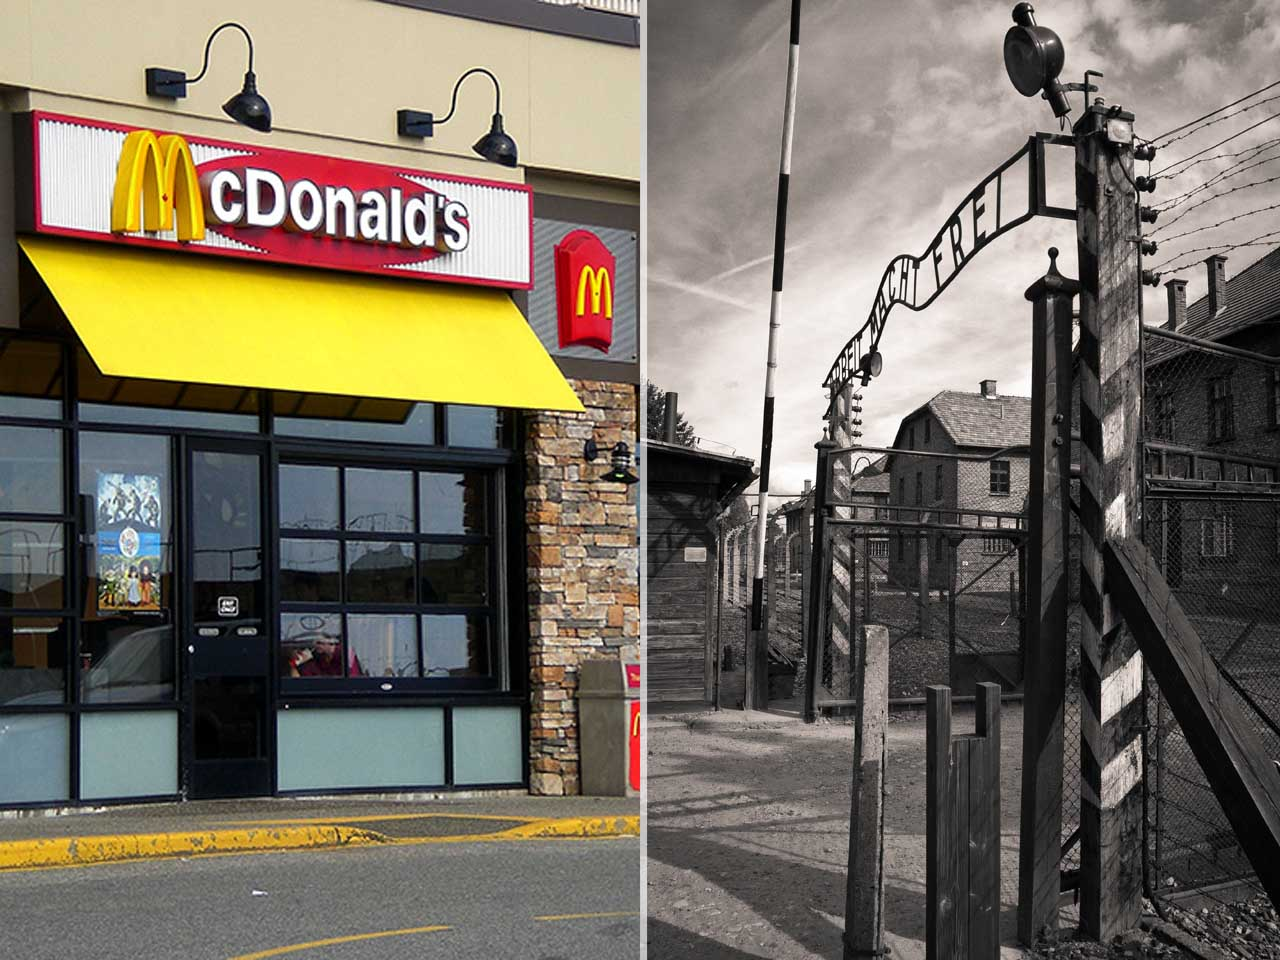 Prisoners arrived at Auschwitz just days after McDonald's was founded, 1940.